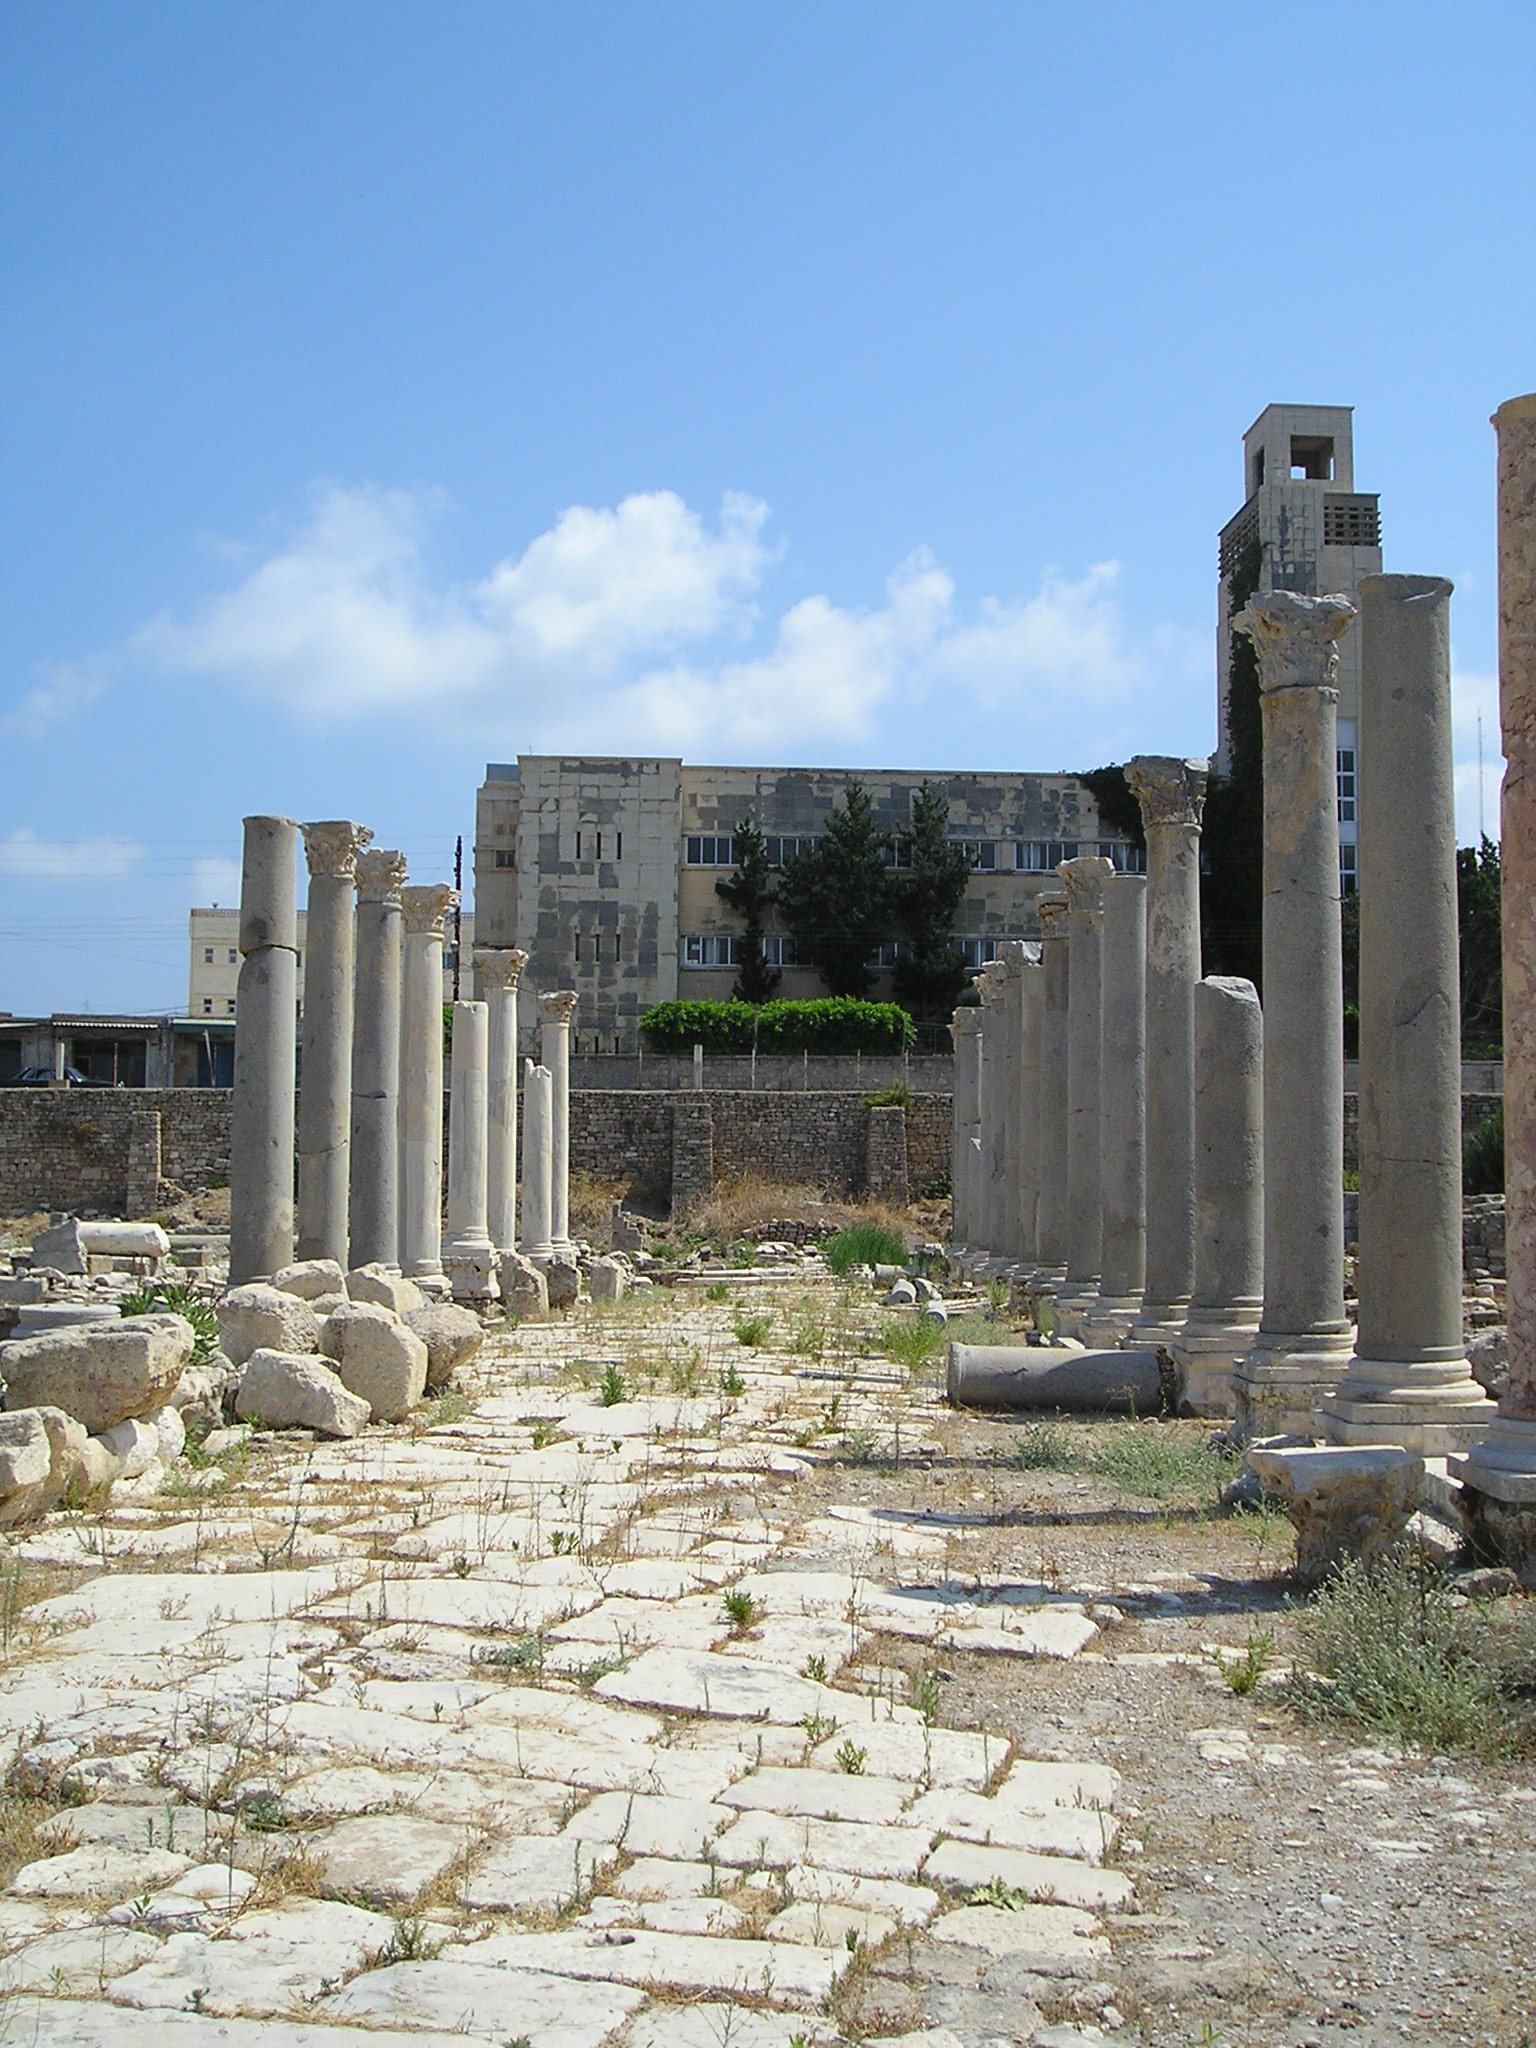 The Athens Agora